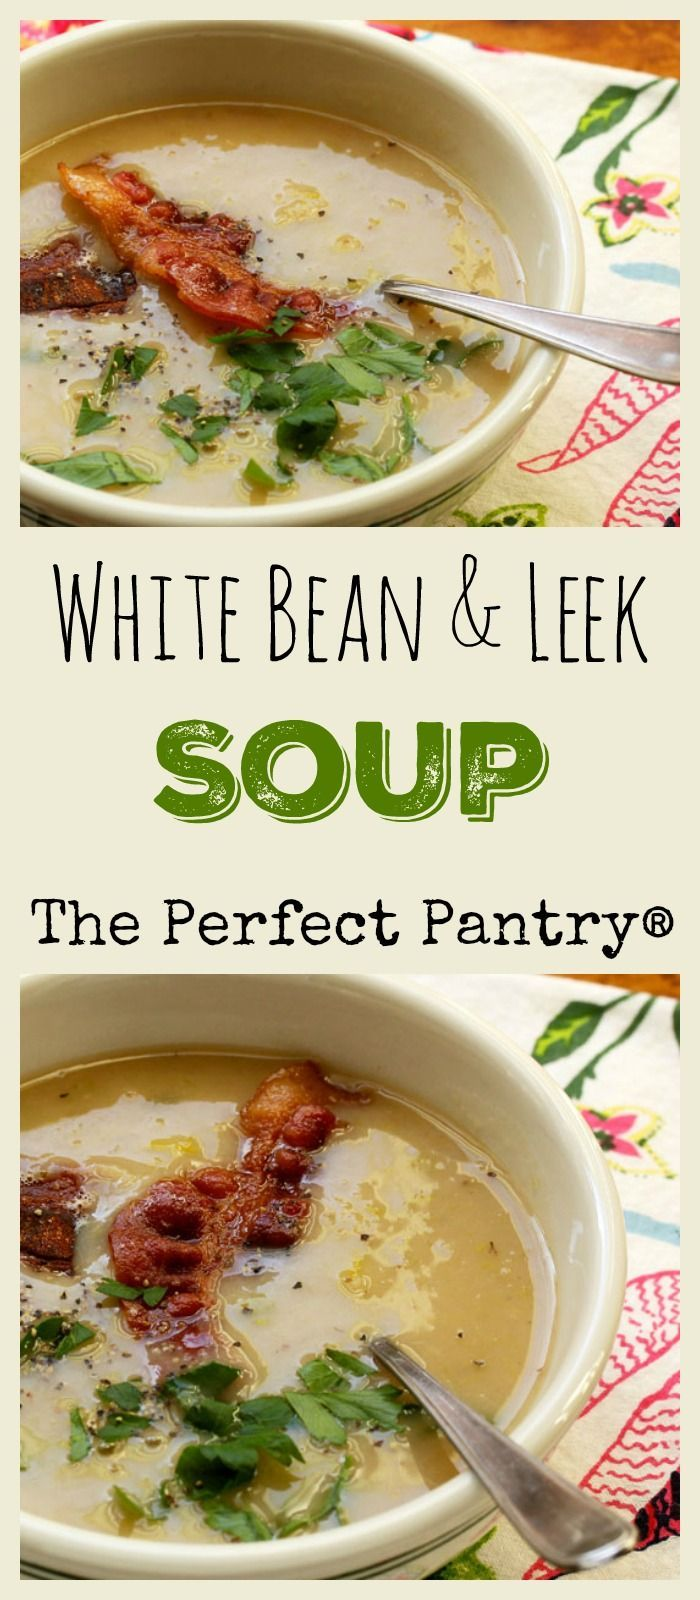 A simple white bean and leek soup that's perfect on a winter day. Quick and easy. [from ThePerfectPantry.com]